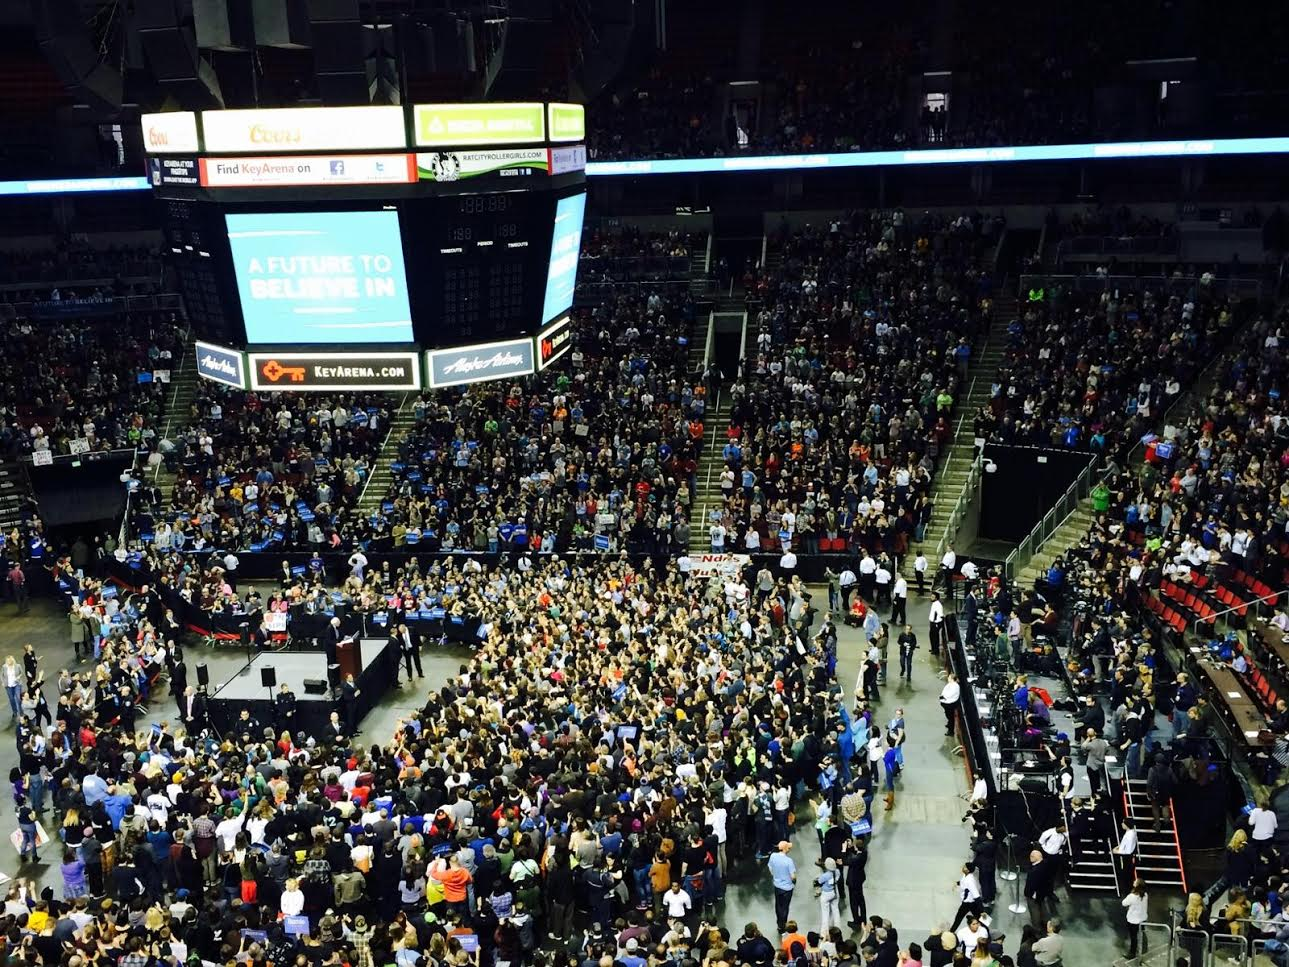 Rally for Bernie in the Key Arena, Seattle, WA. Foto by Kristina Katayama. Sunday 20 March 2016.